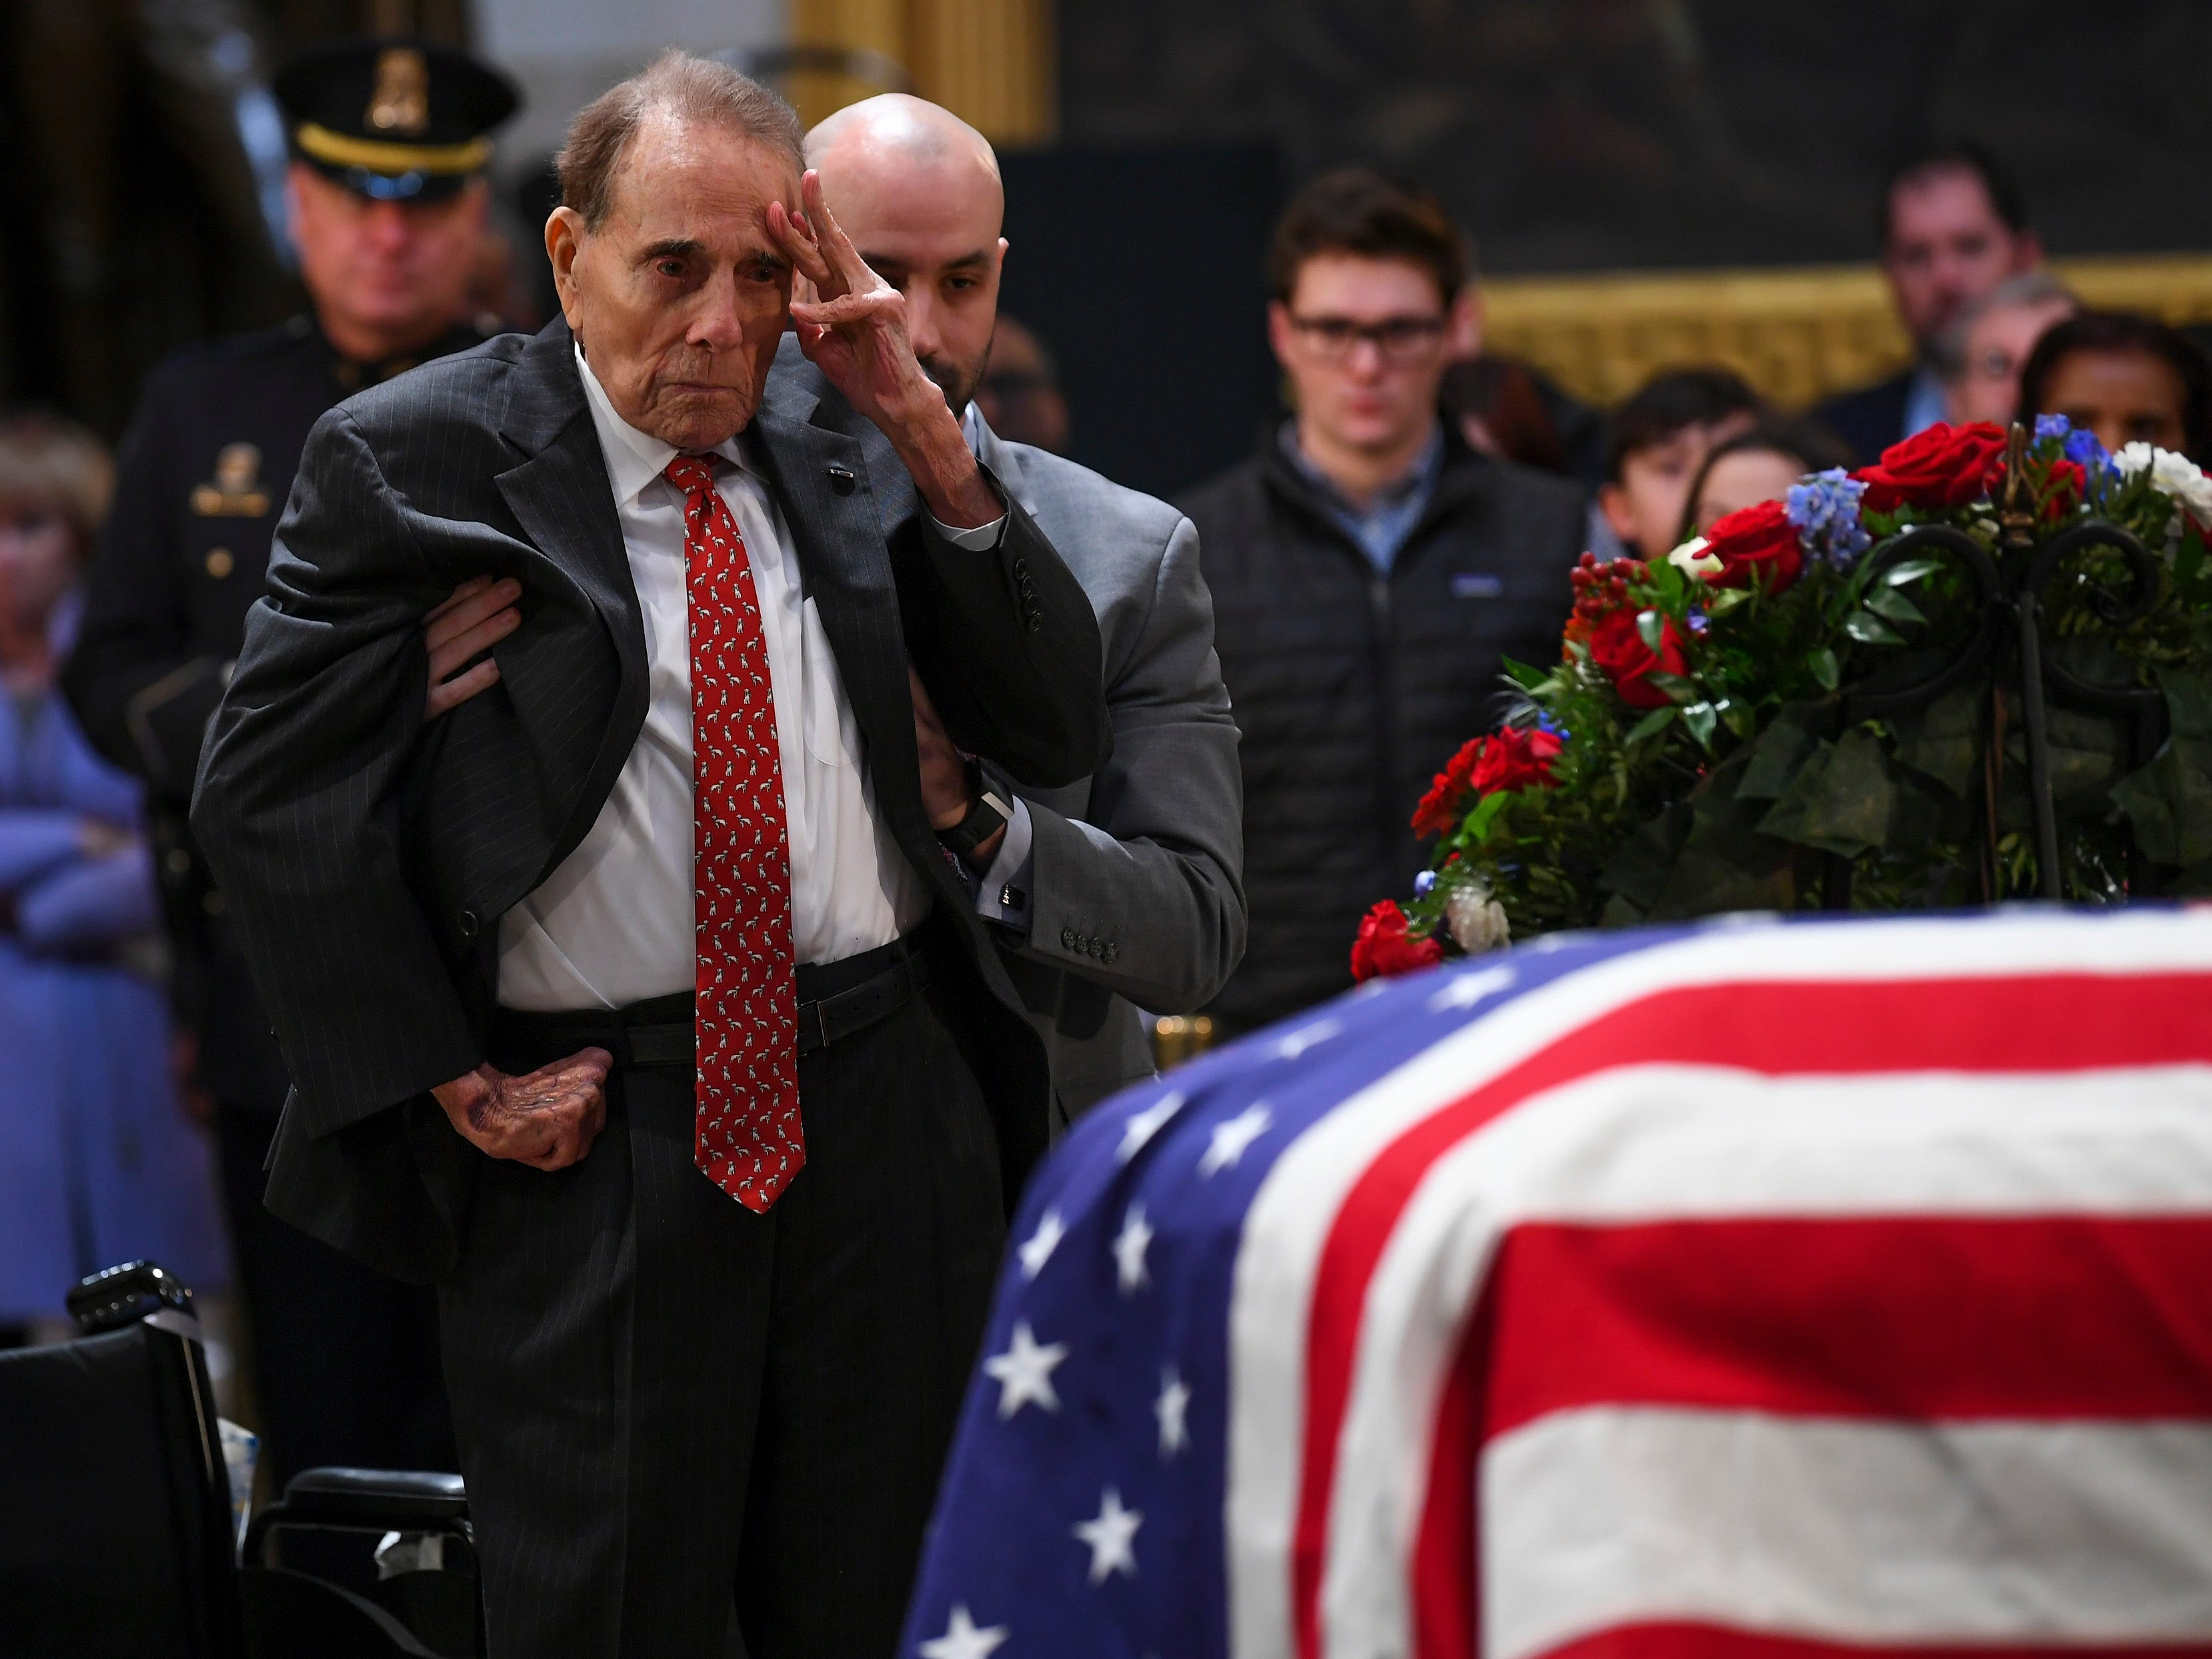 12/4/18 1:03:00 PM -- Washington, DC, U.S.A  -- Former Sen. Bob Dole salutes the casket of President George H.W. Bush who lies in state at the U.S. Capitol Rotunda. --    Photo by Jack Gruber, USA TODAY staff ORG XMIT:  JG 137685 Arrival and Fune 12/4 (Via OlyDrop)